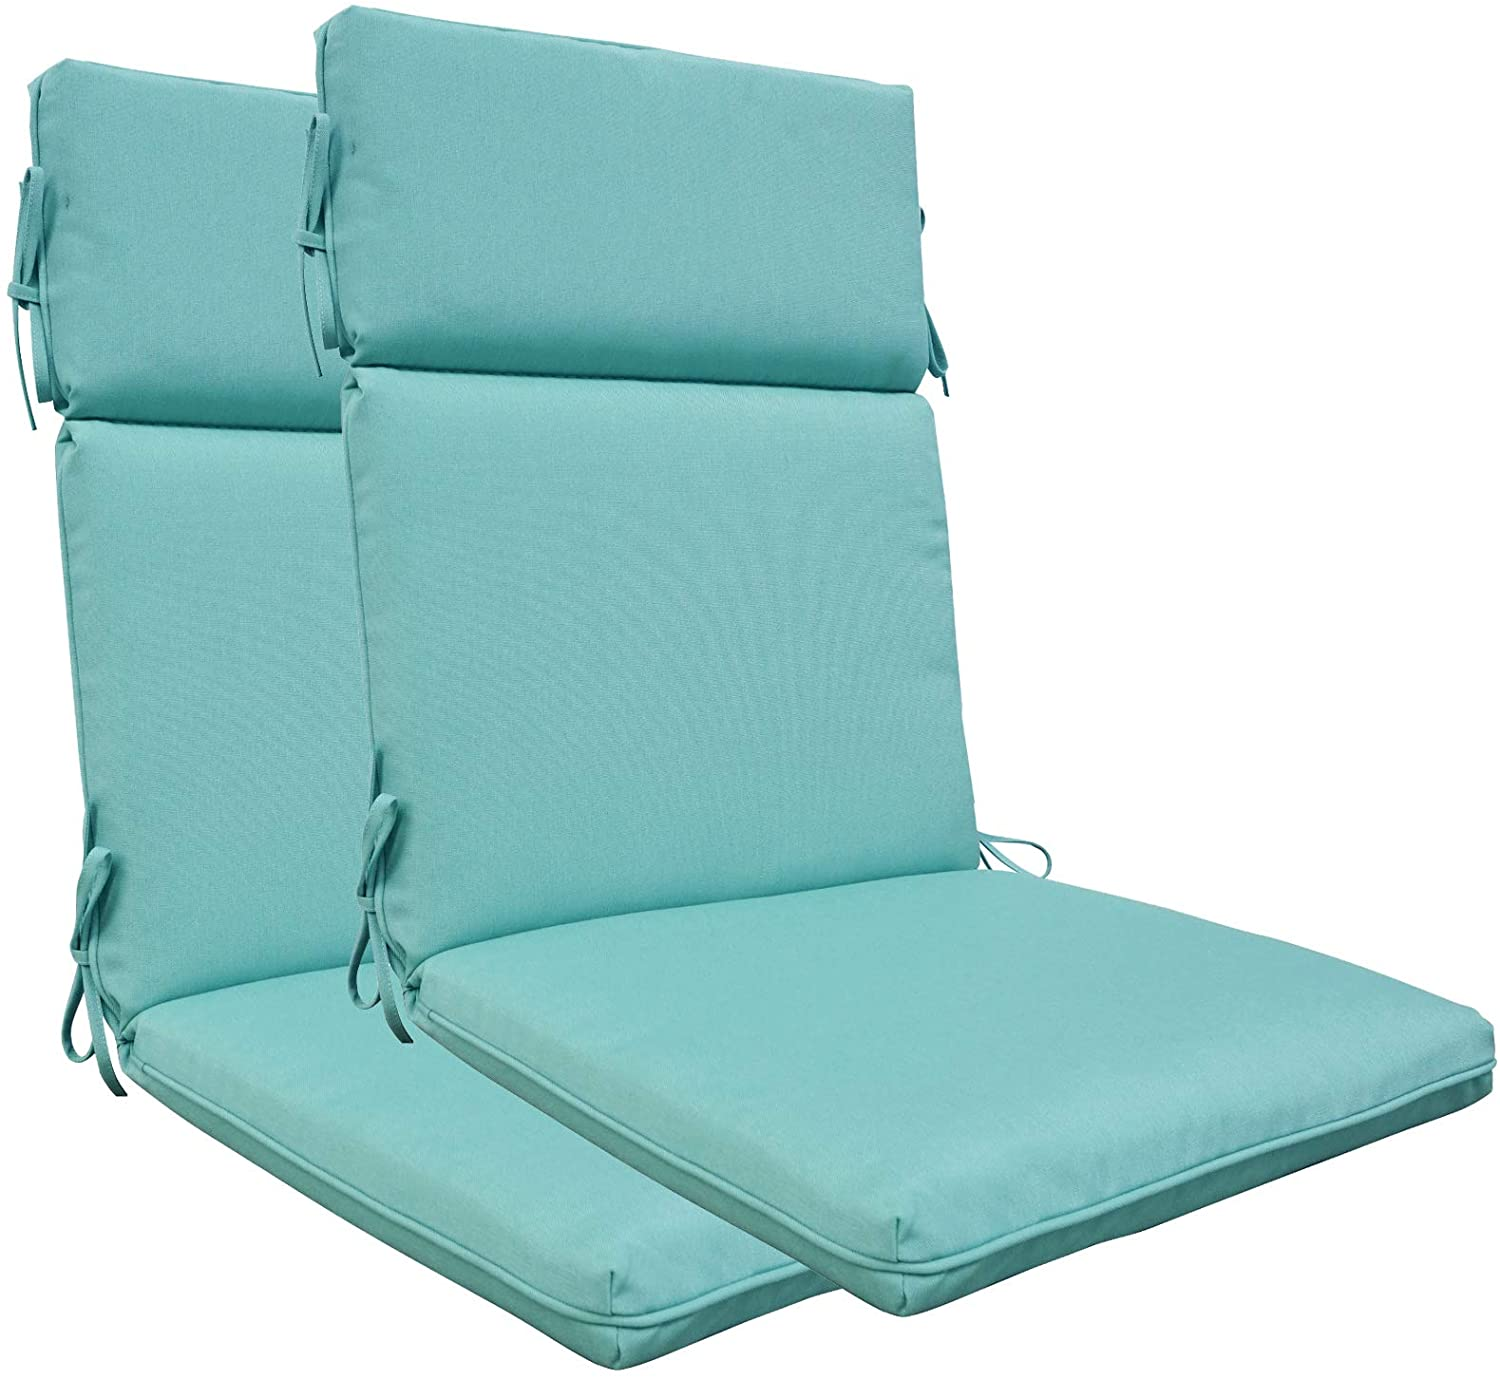 BOSSIMA Indoor Outdoor High Back Chair Cushions Replacement Patio Chair Seat Cushions Set of 2 (Olefin Light Blue)